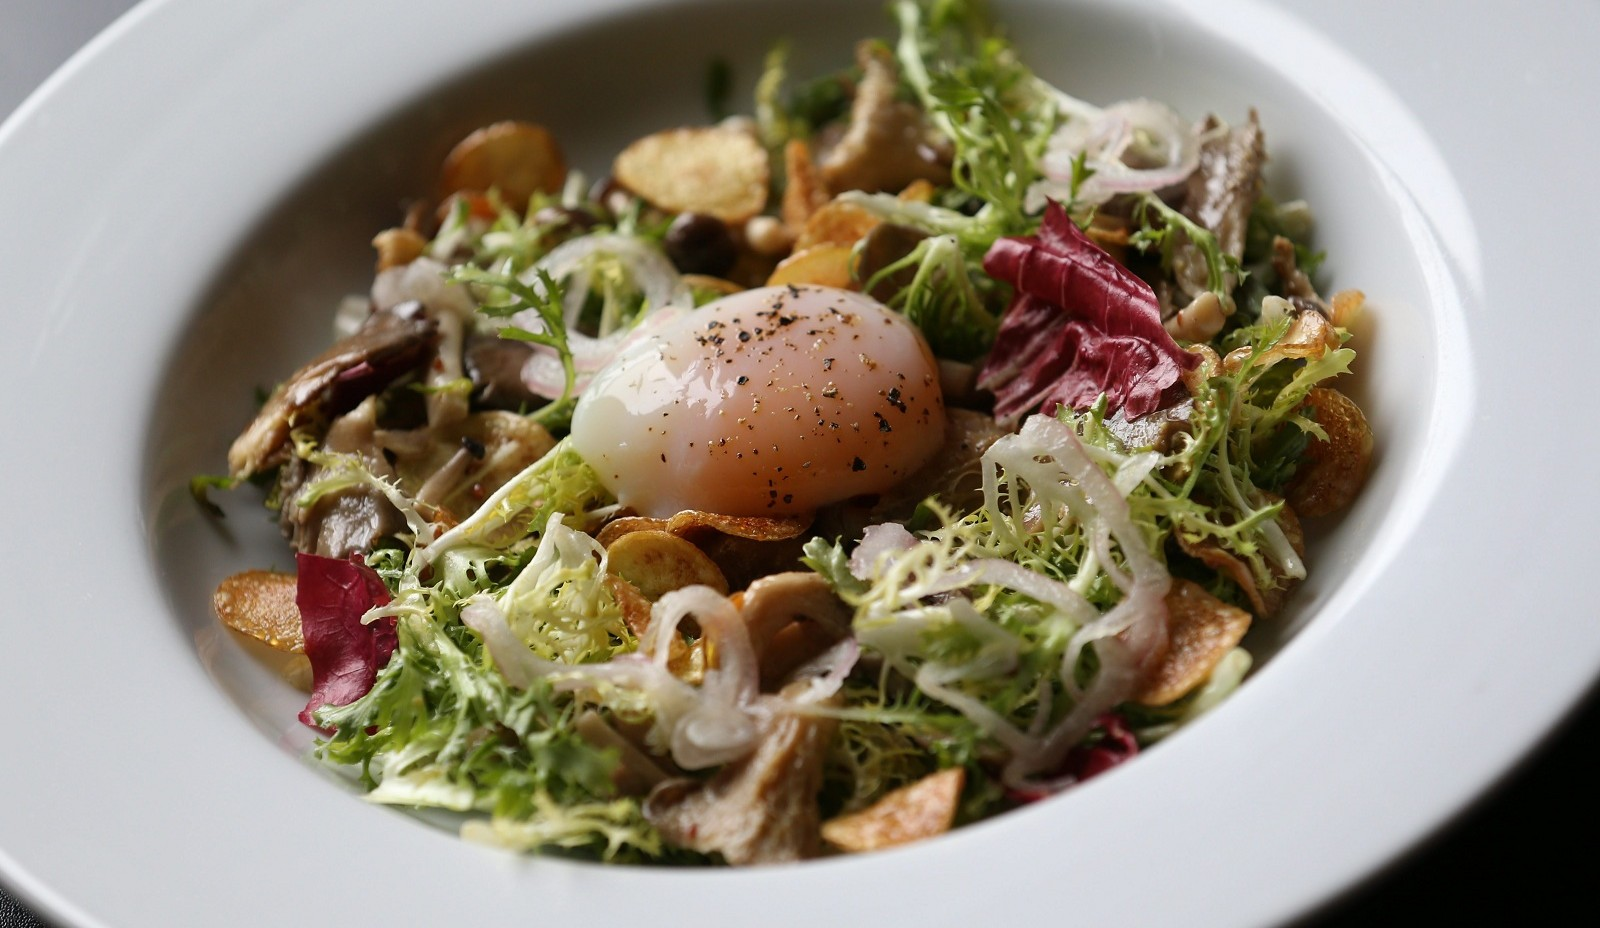 The Lyonnaise salad with bitter greens, smoked mushrooms, fingerling chips and a soft egg from Bourbon & Butter. (Sharon Cantillon/Buffalo News file photo)